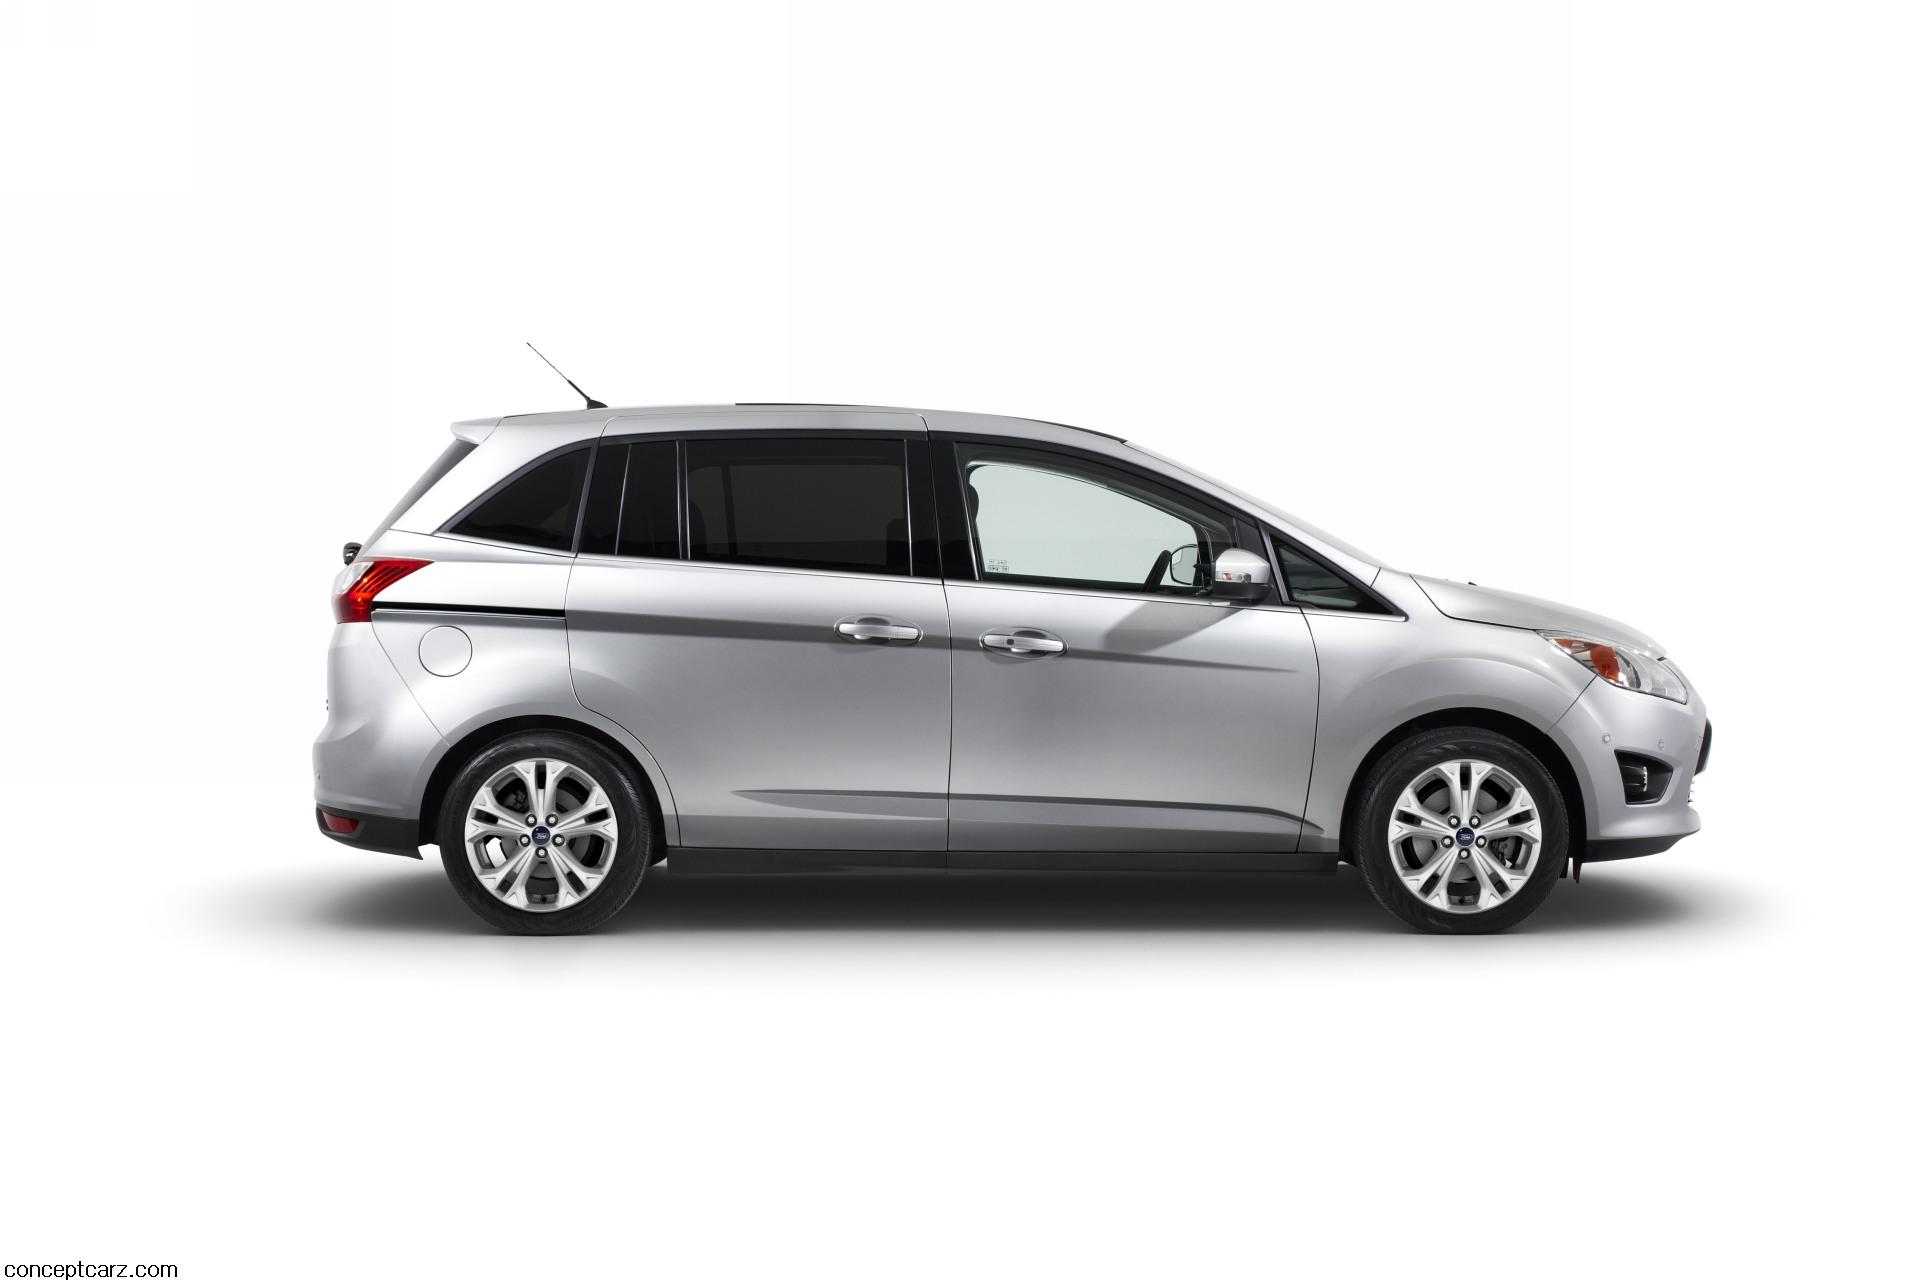 2011 ford c max technical specifications and data engine dimensions and mechanical details. Black Bedroom Furniture Sets. Home Design Ideas